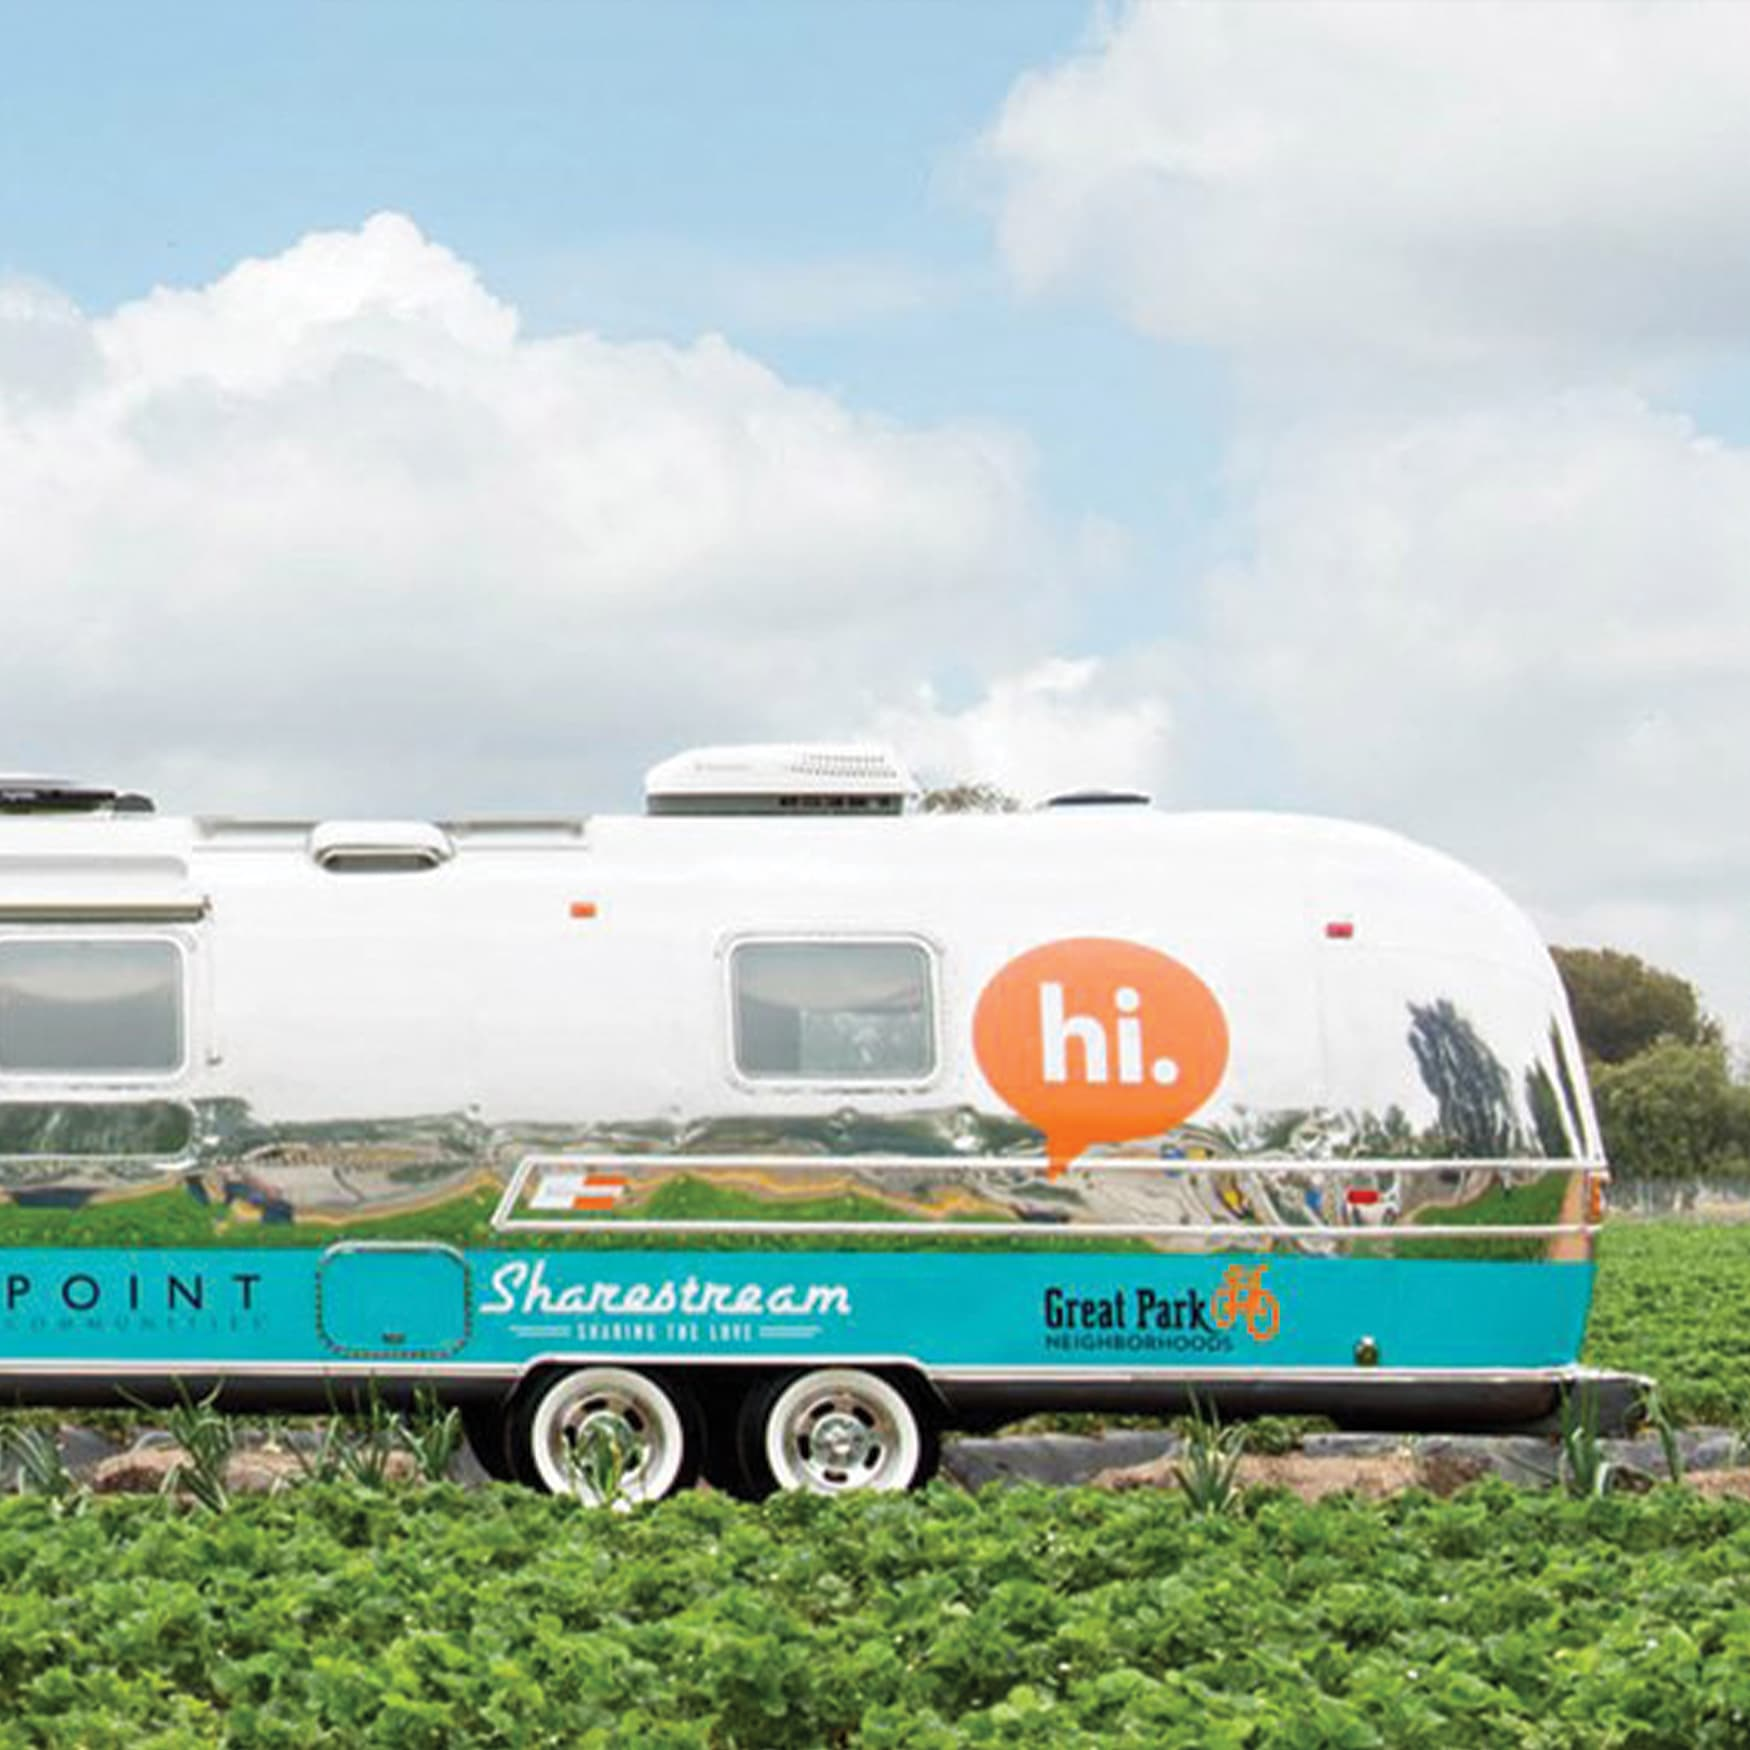 An airstream trailer with friendly, bold graphics for RSM and Fivepoint's Great Park Neighborhoods project.